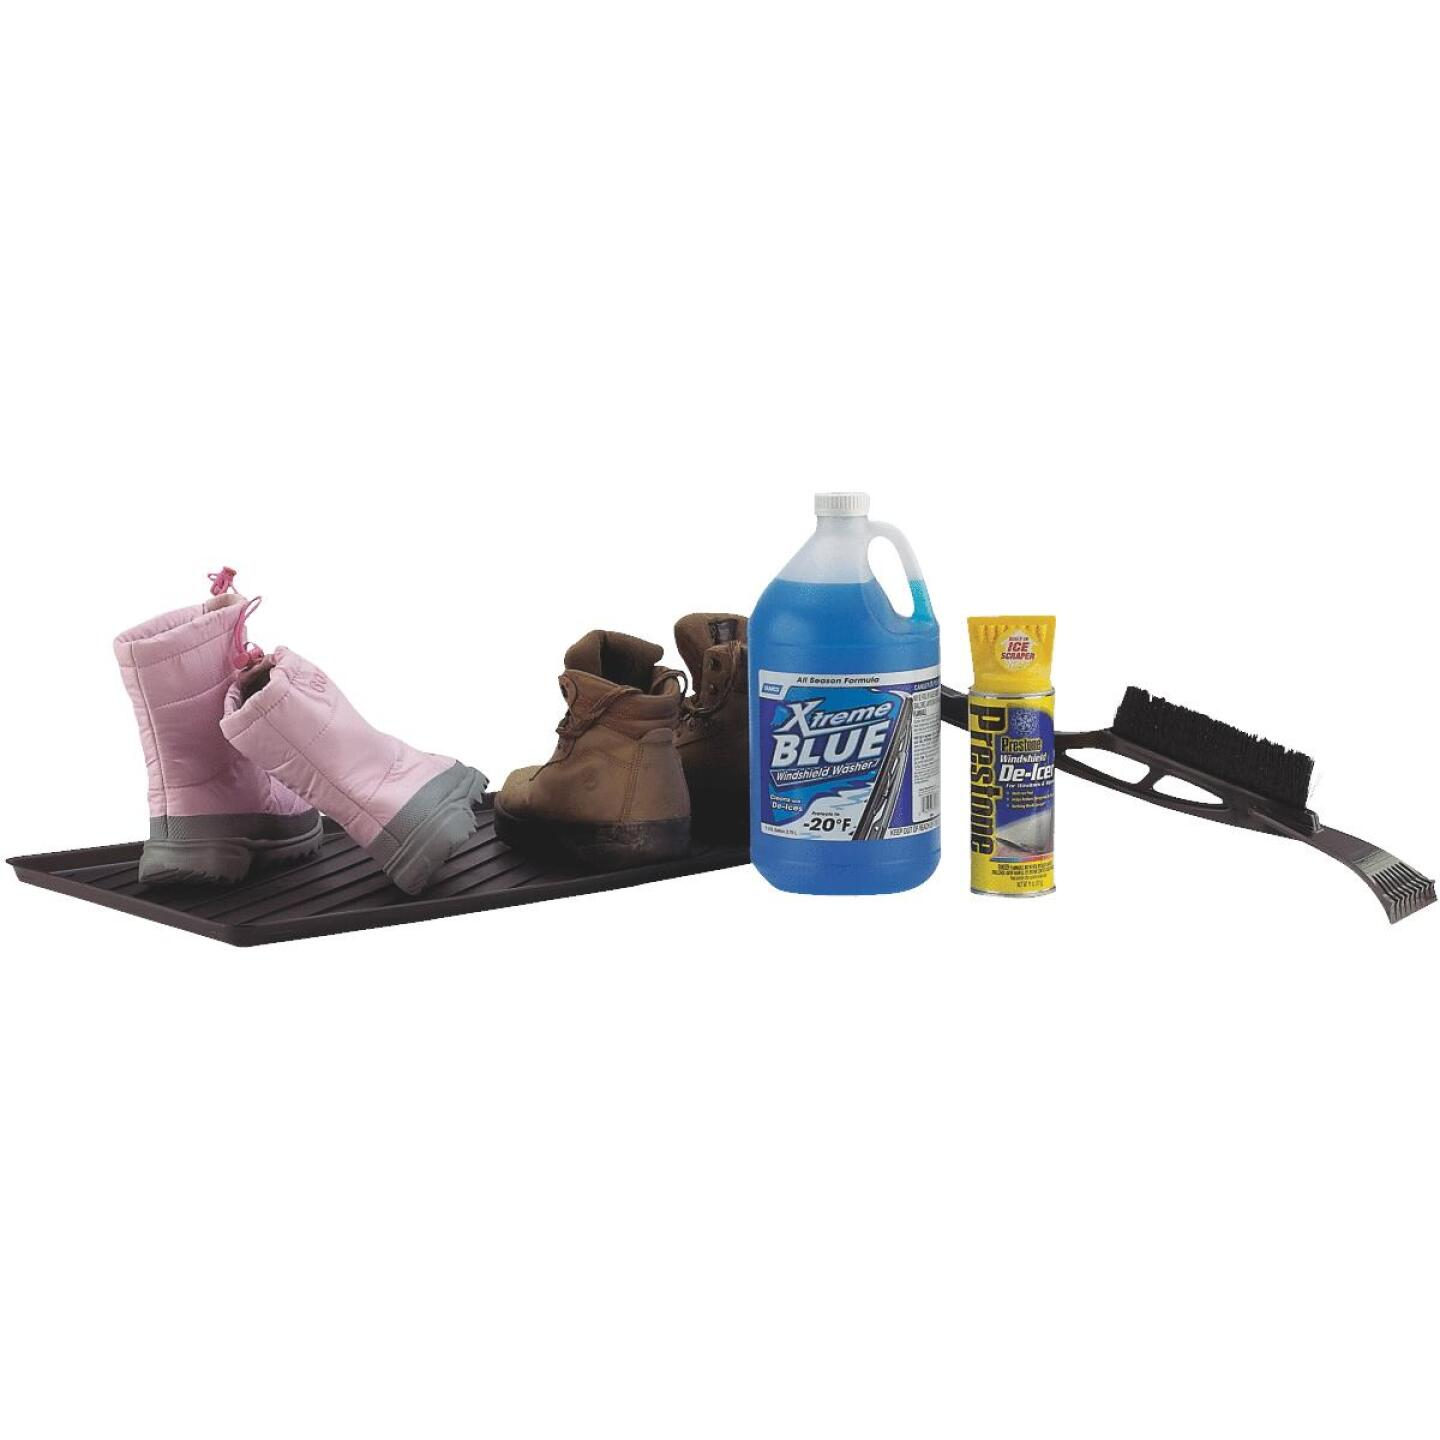 15.75 In. x 23.5 In. Black Recycled Plastic Rectangular Boot Tray Image 2